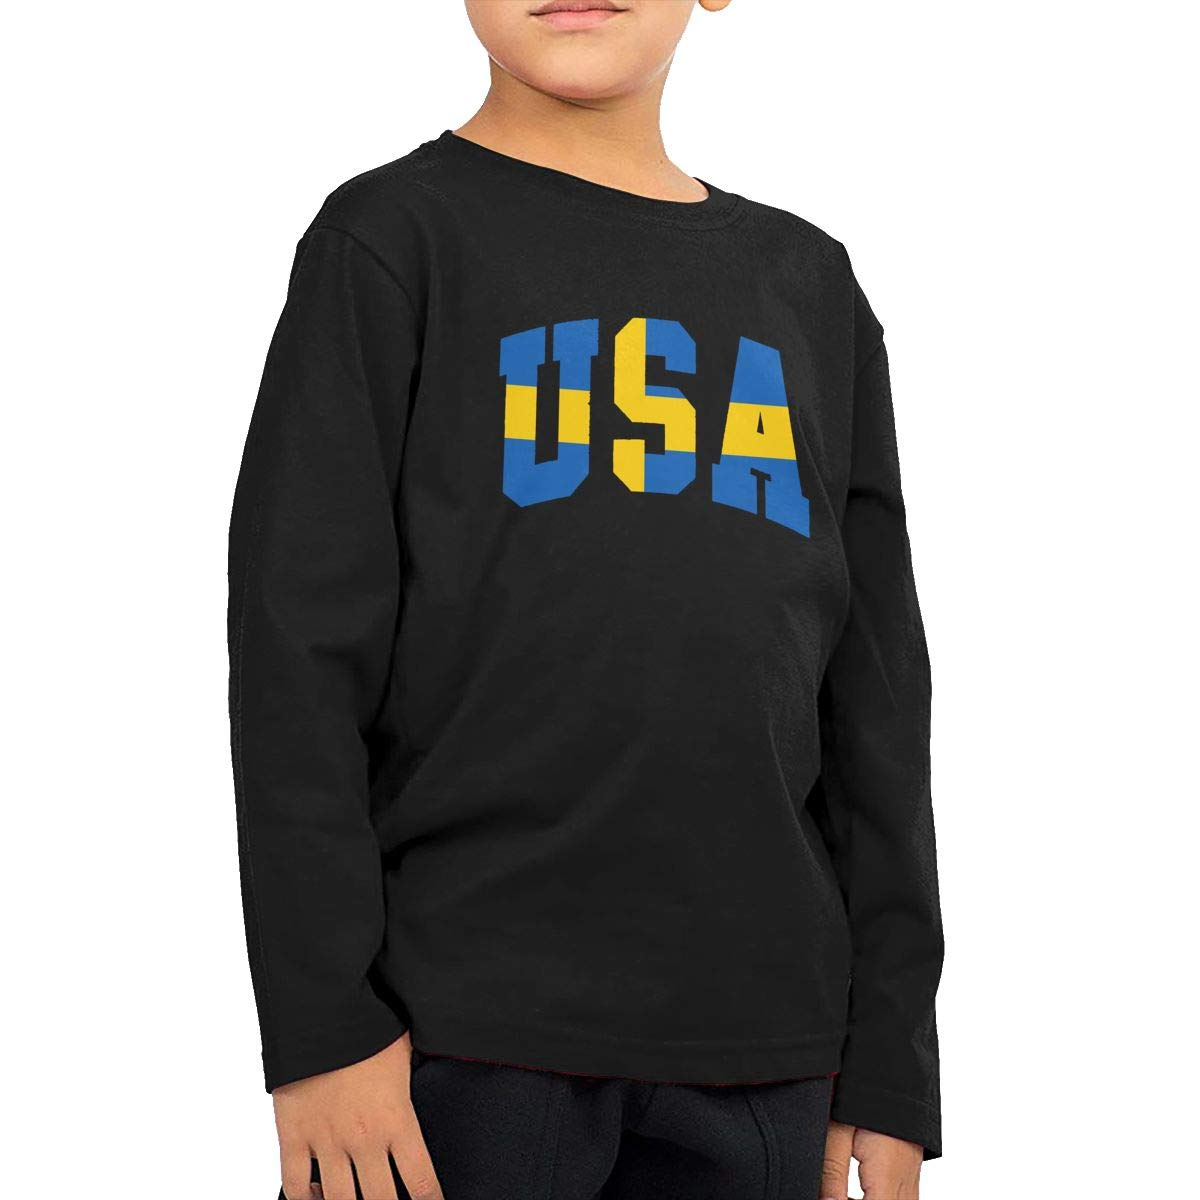 Swedish Flag USA Novelty Toddler Kid Baby Boys Girls Long Sleeve T-Shirt Tops